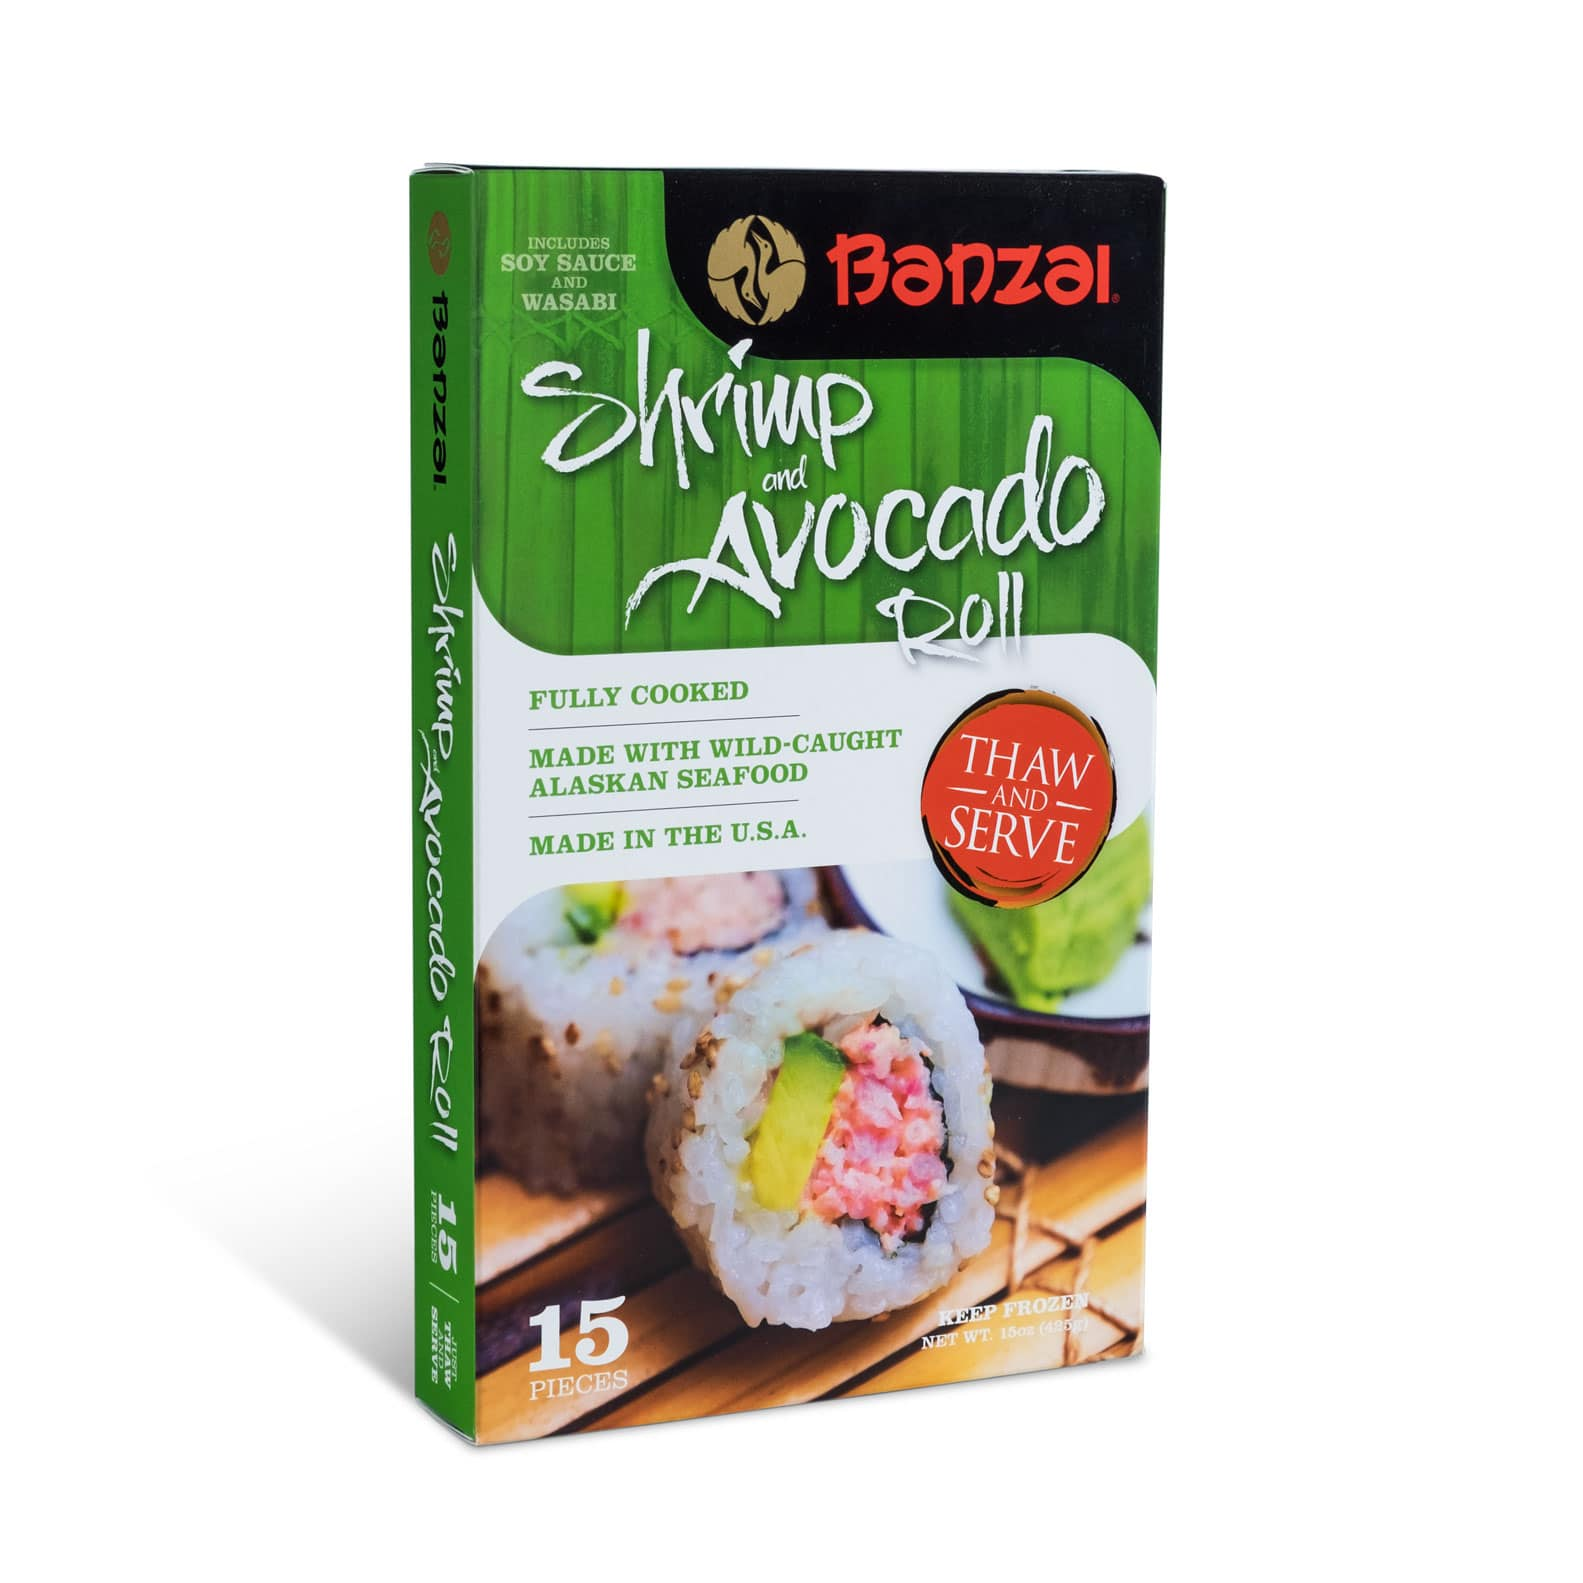 Banzai_15pc_ShrimpAvocx_May2017_JS-min.jpg